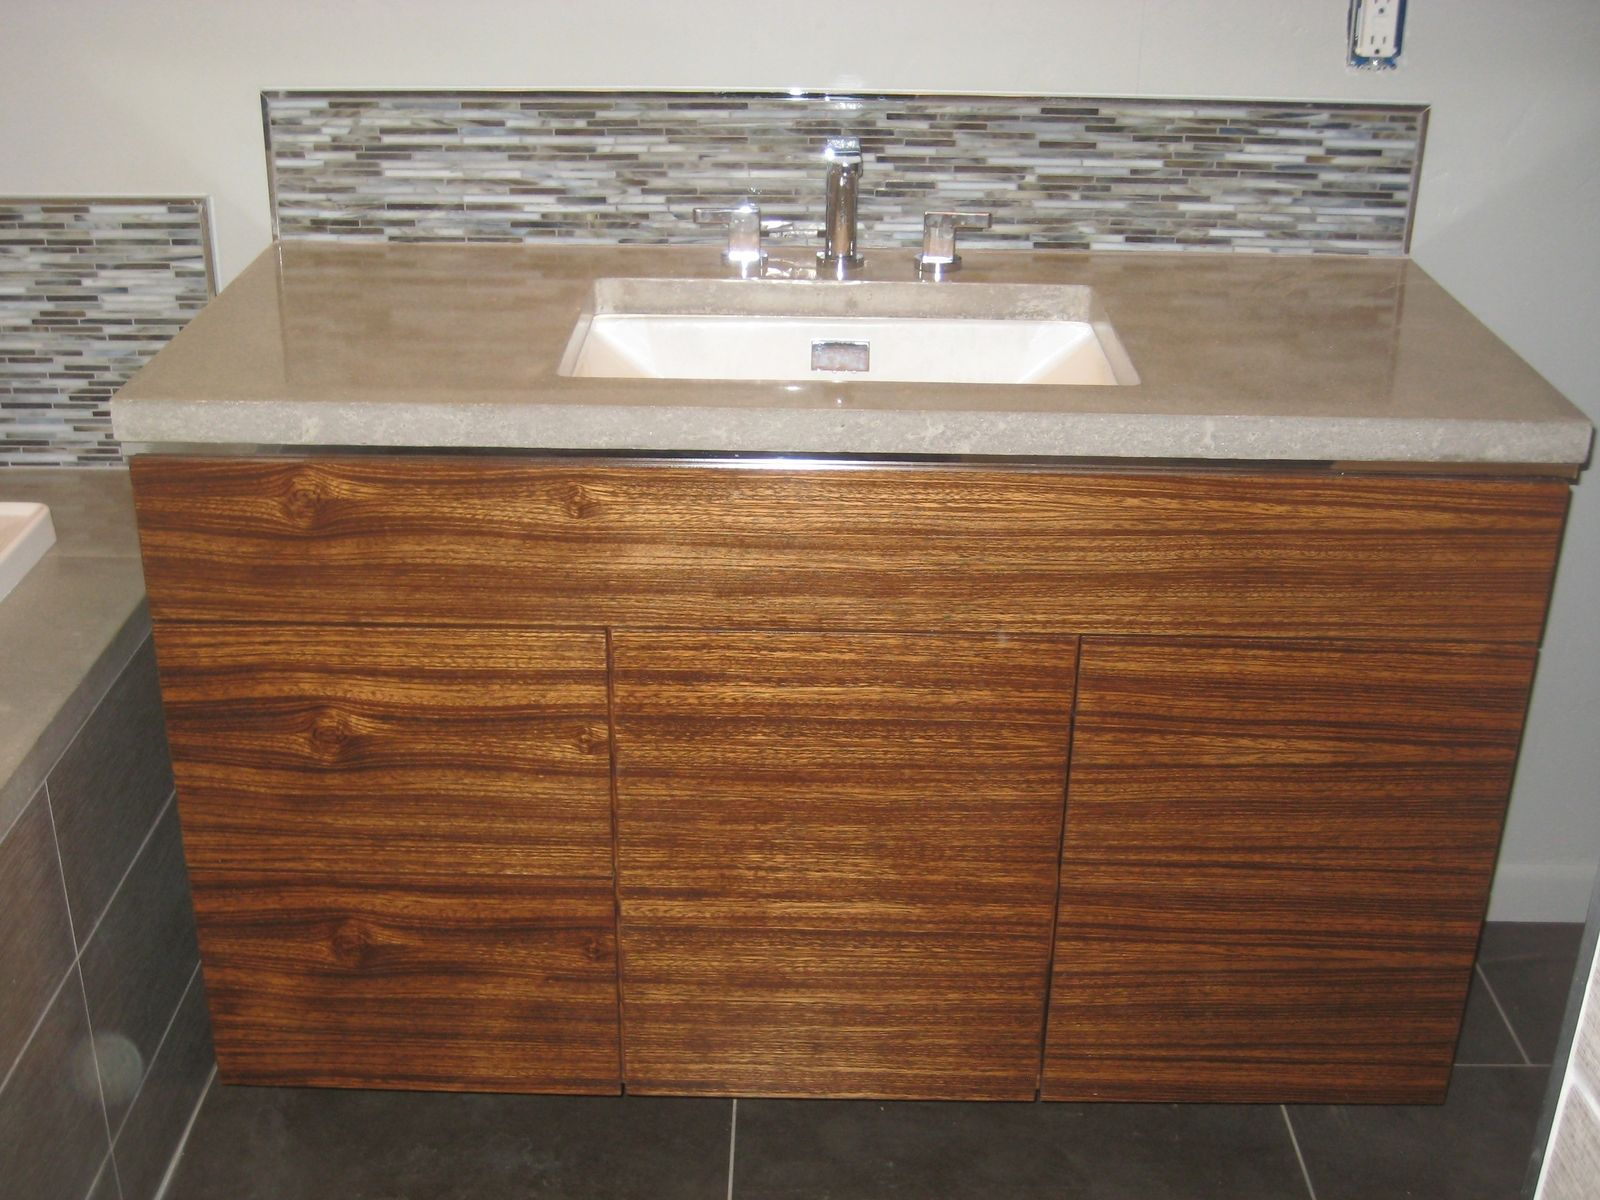 Hand Crafted Custom Bathroom W Zebrawood Vanity And Concrete Countertops By Precision Builders